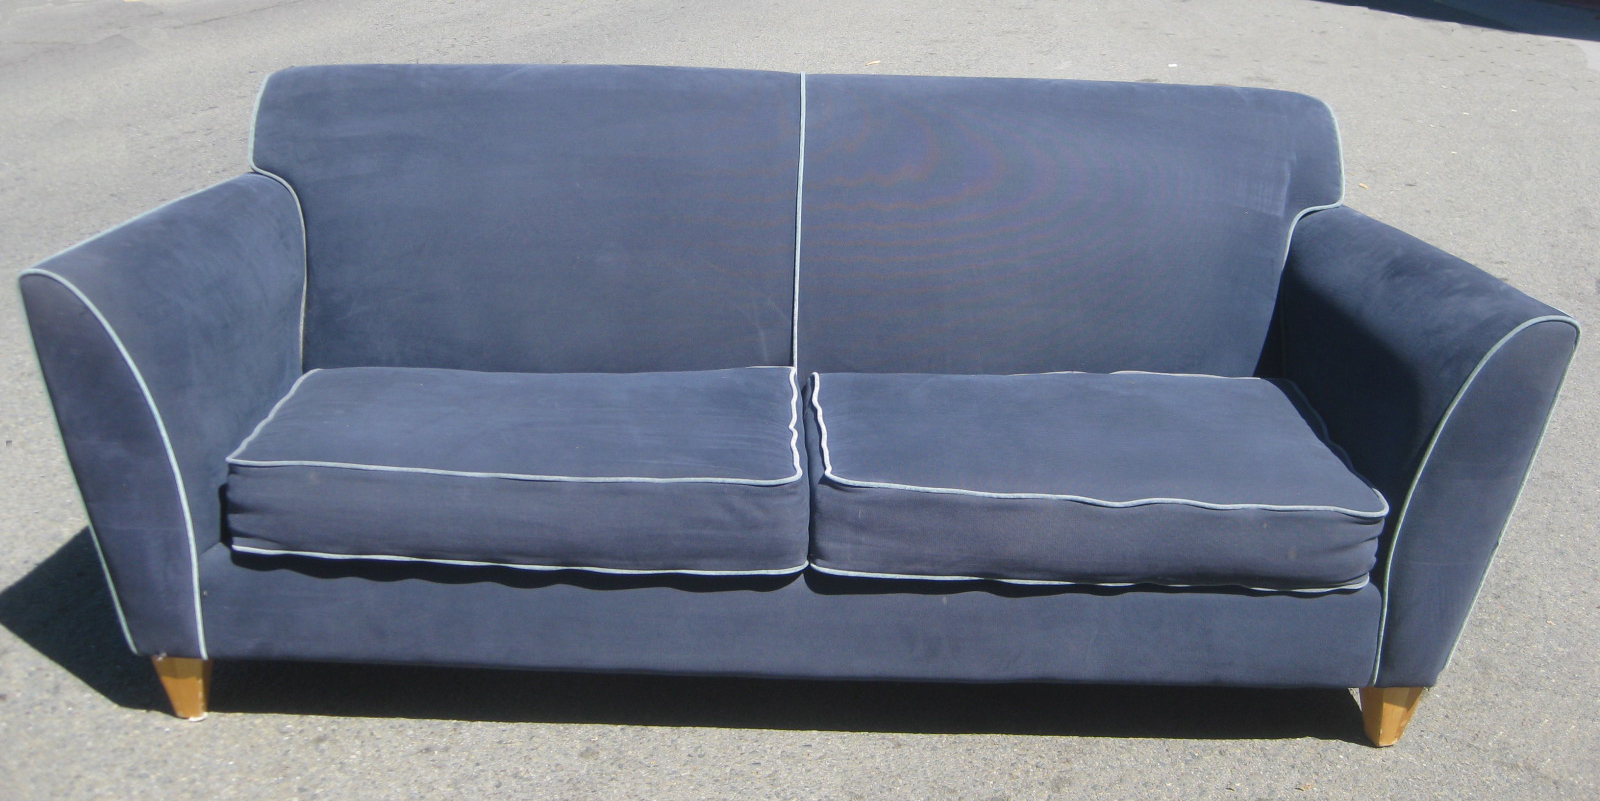 blue sofa white piping bed london ontario uhuru furniture and collectibles sold with